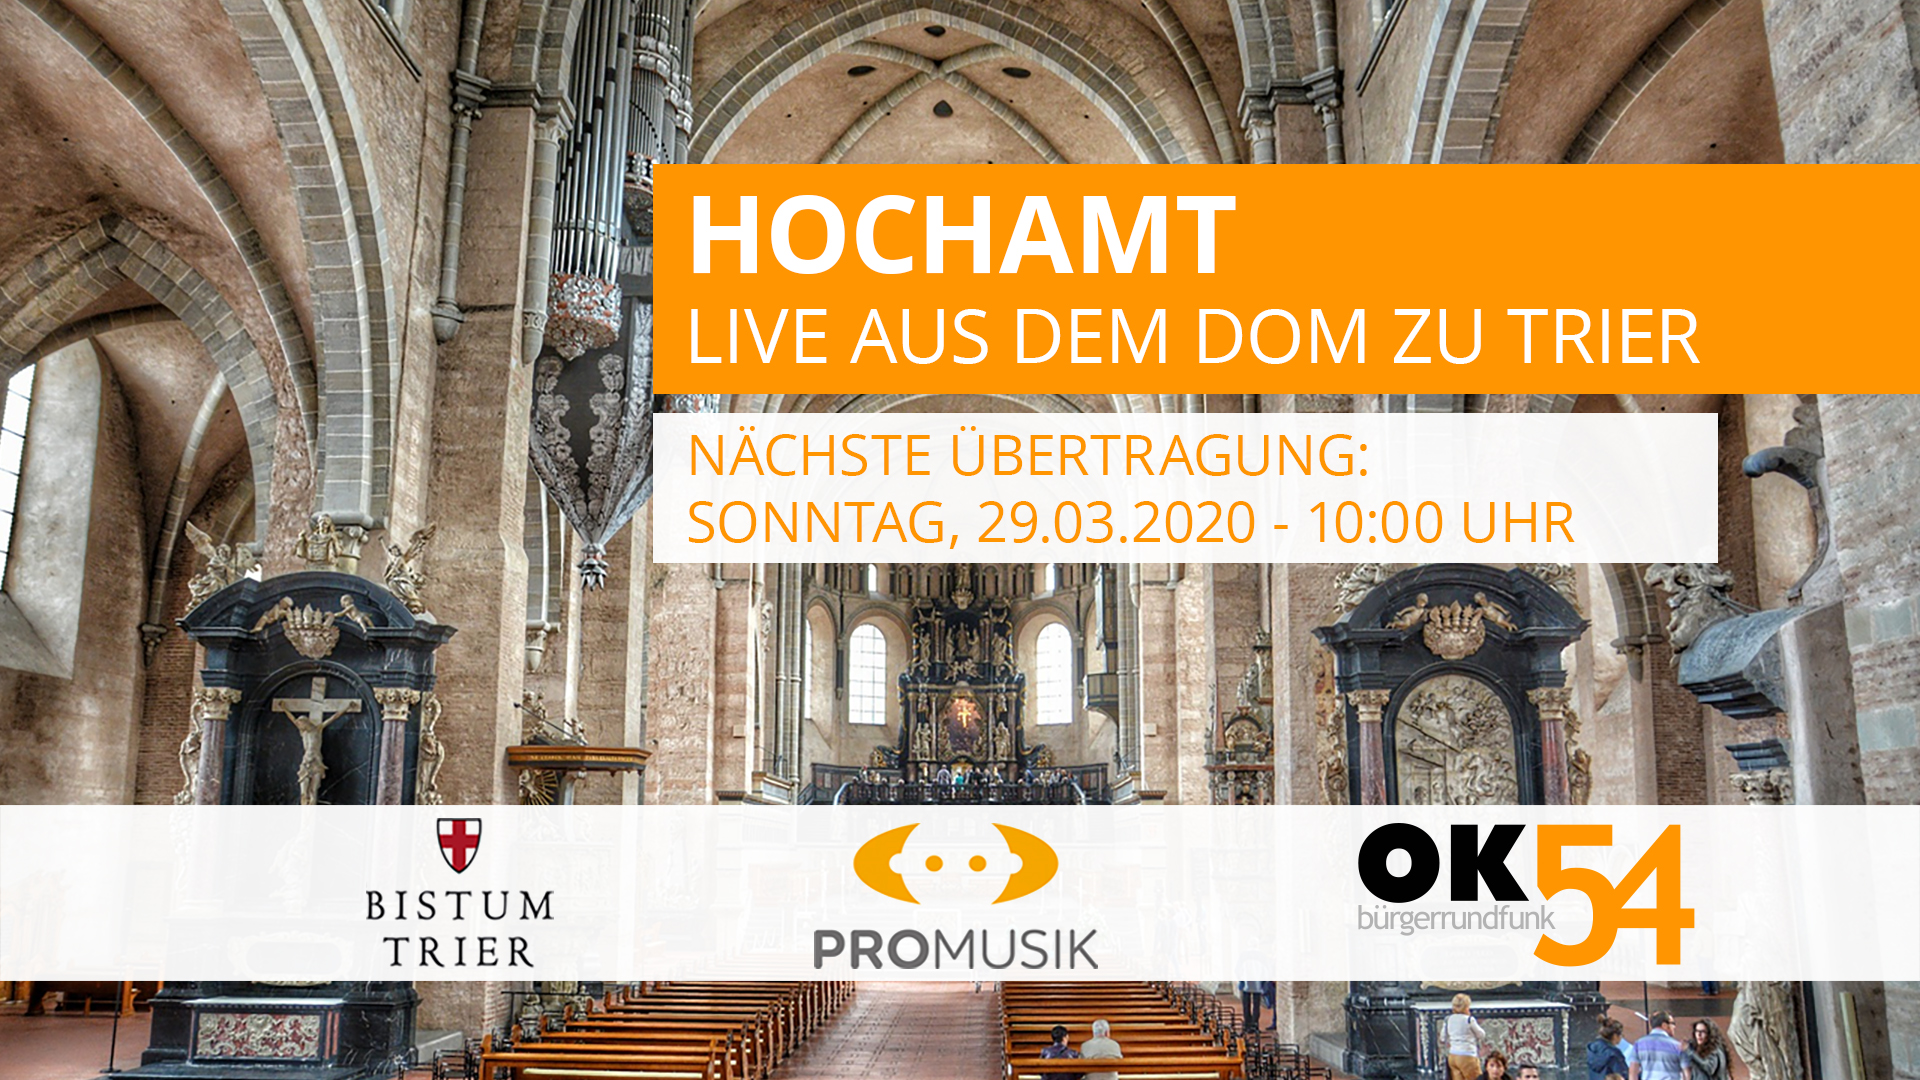 You are currently viewing Hochamt live aus dem Dom